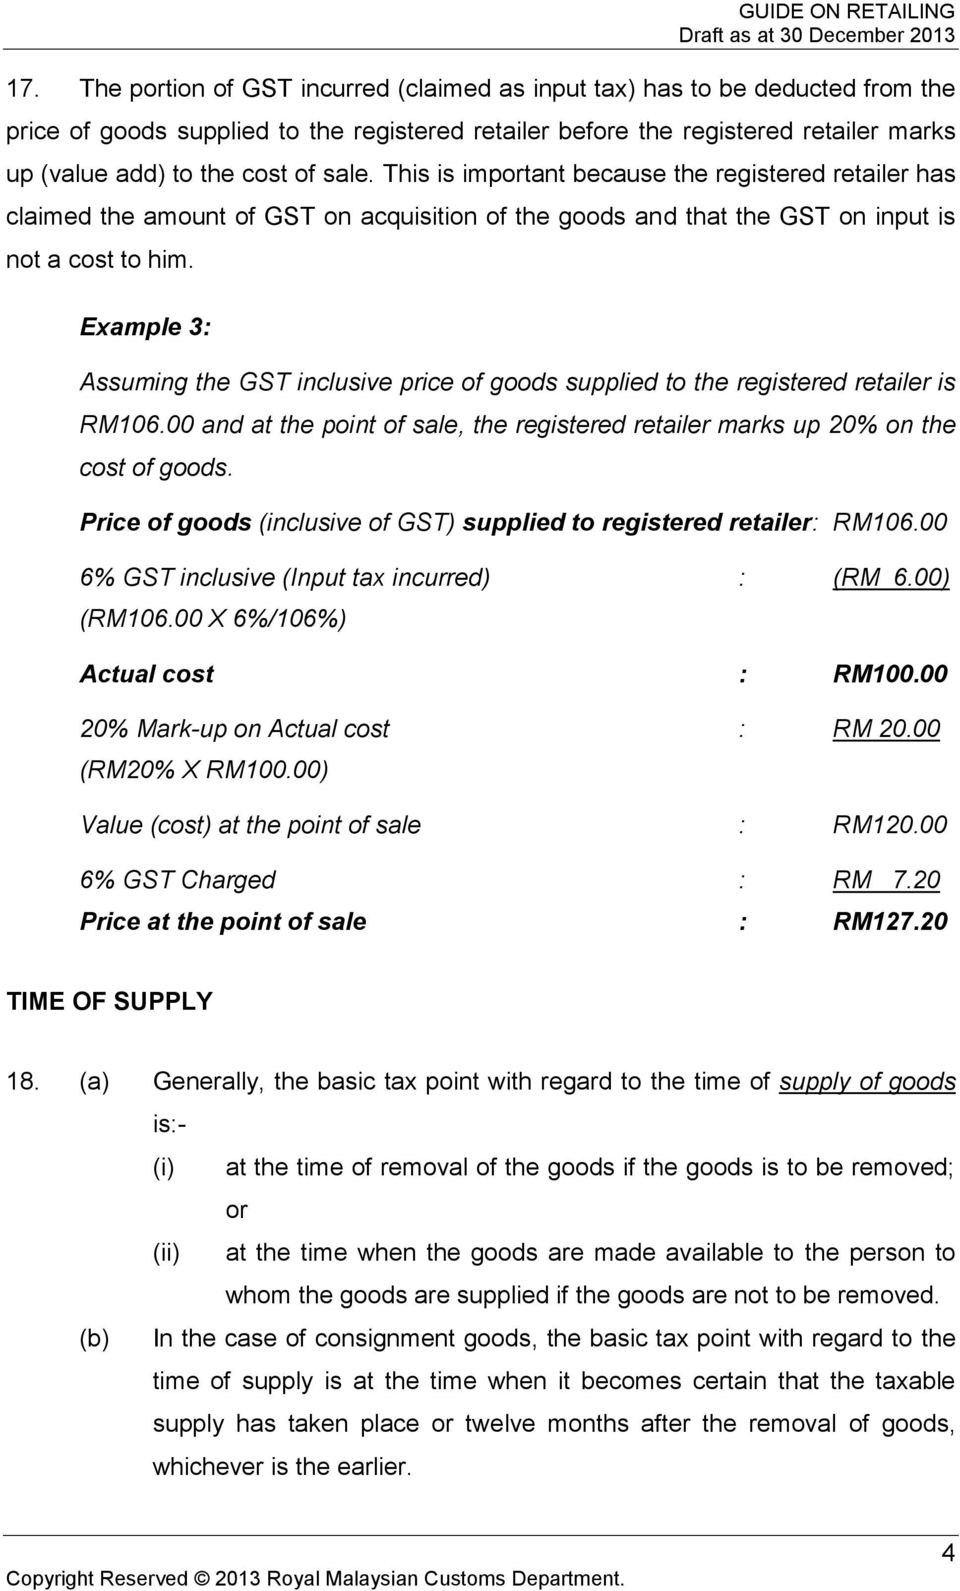 Example 3: Assuming the GST inclusive price of goods supplied to the registered retailer is RM106.00 and at the point of sale, the registered retailer marks up 20% on the cost of goods.